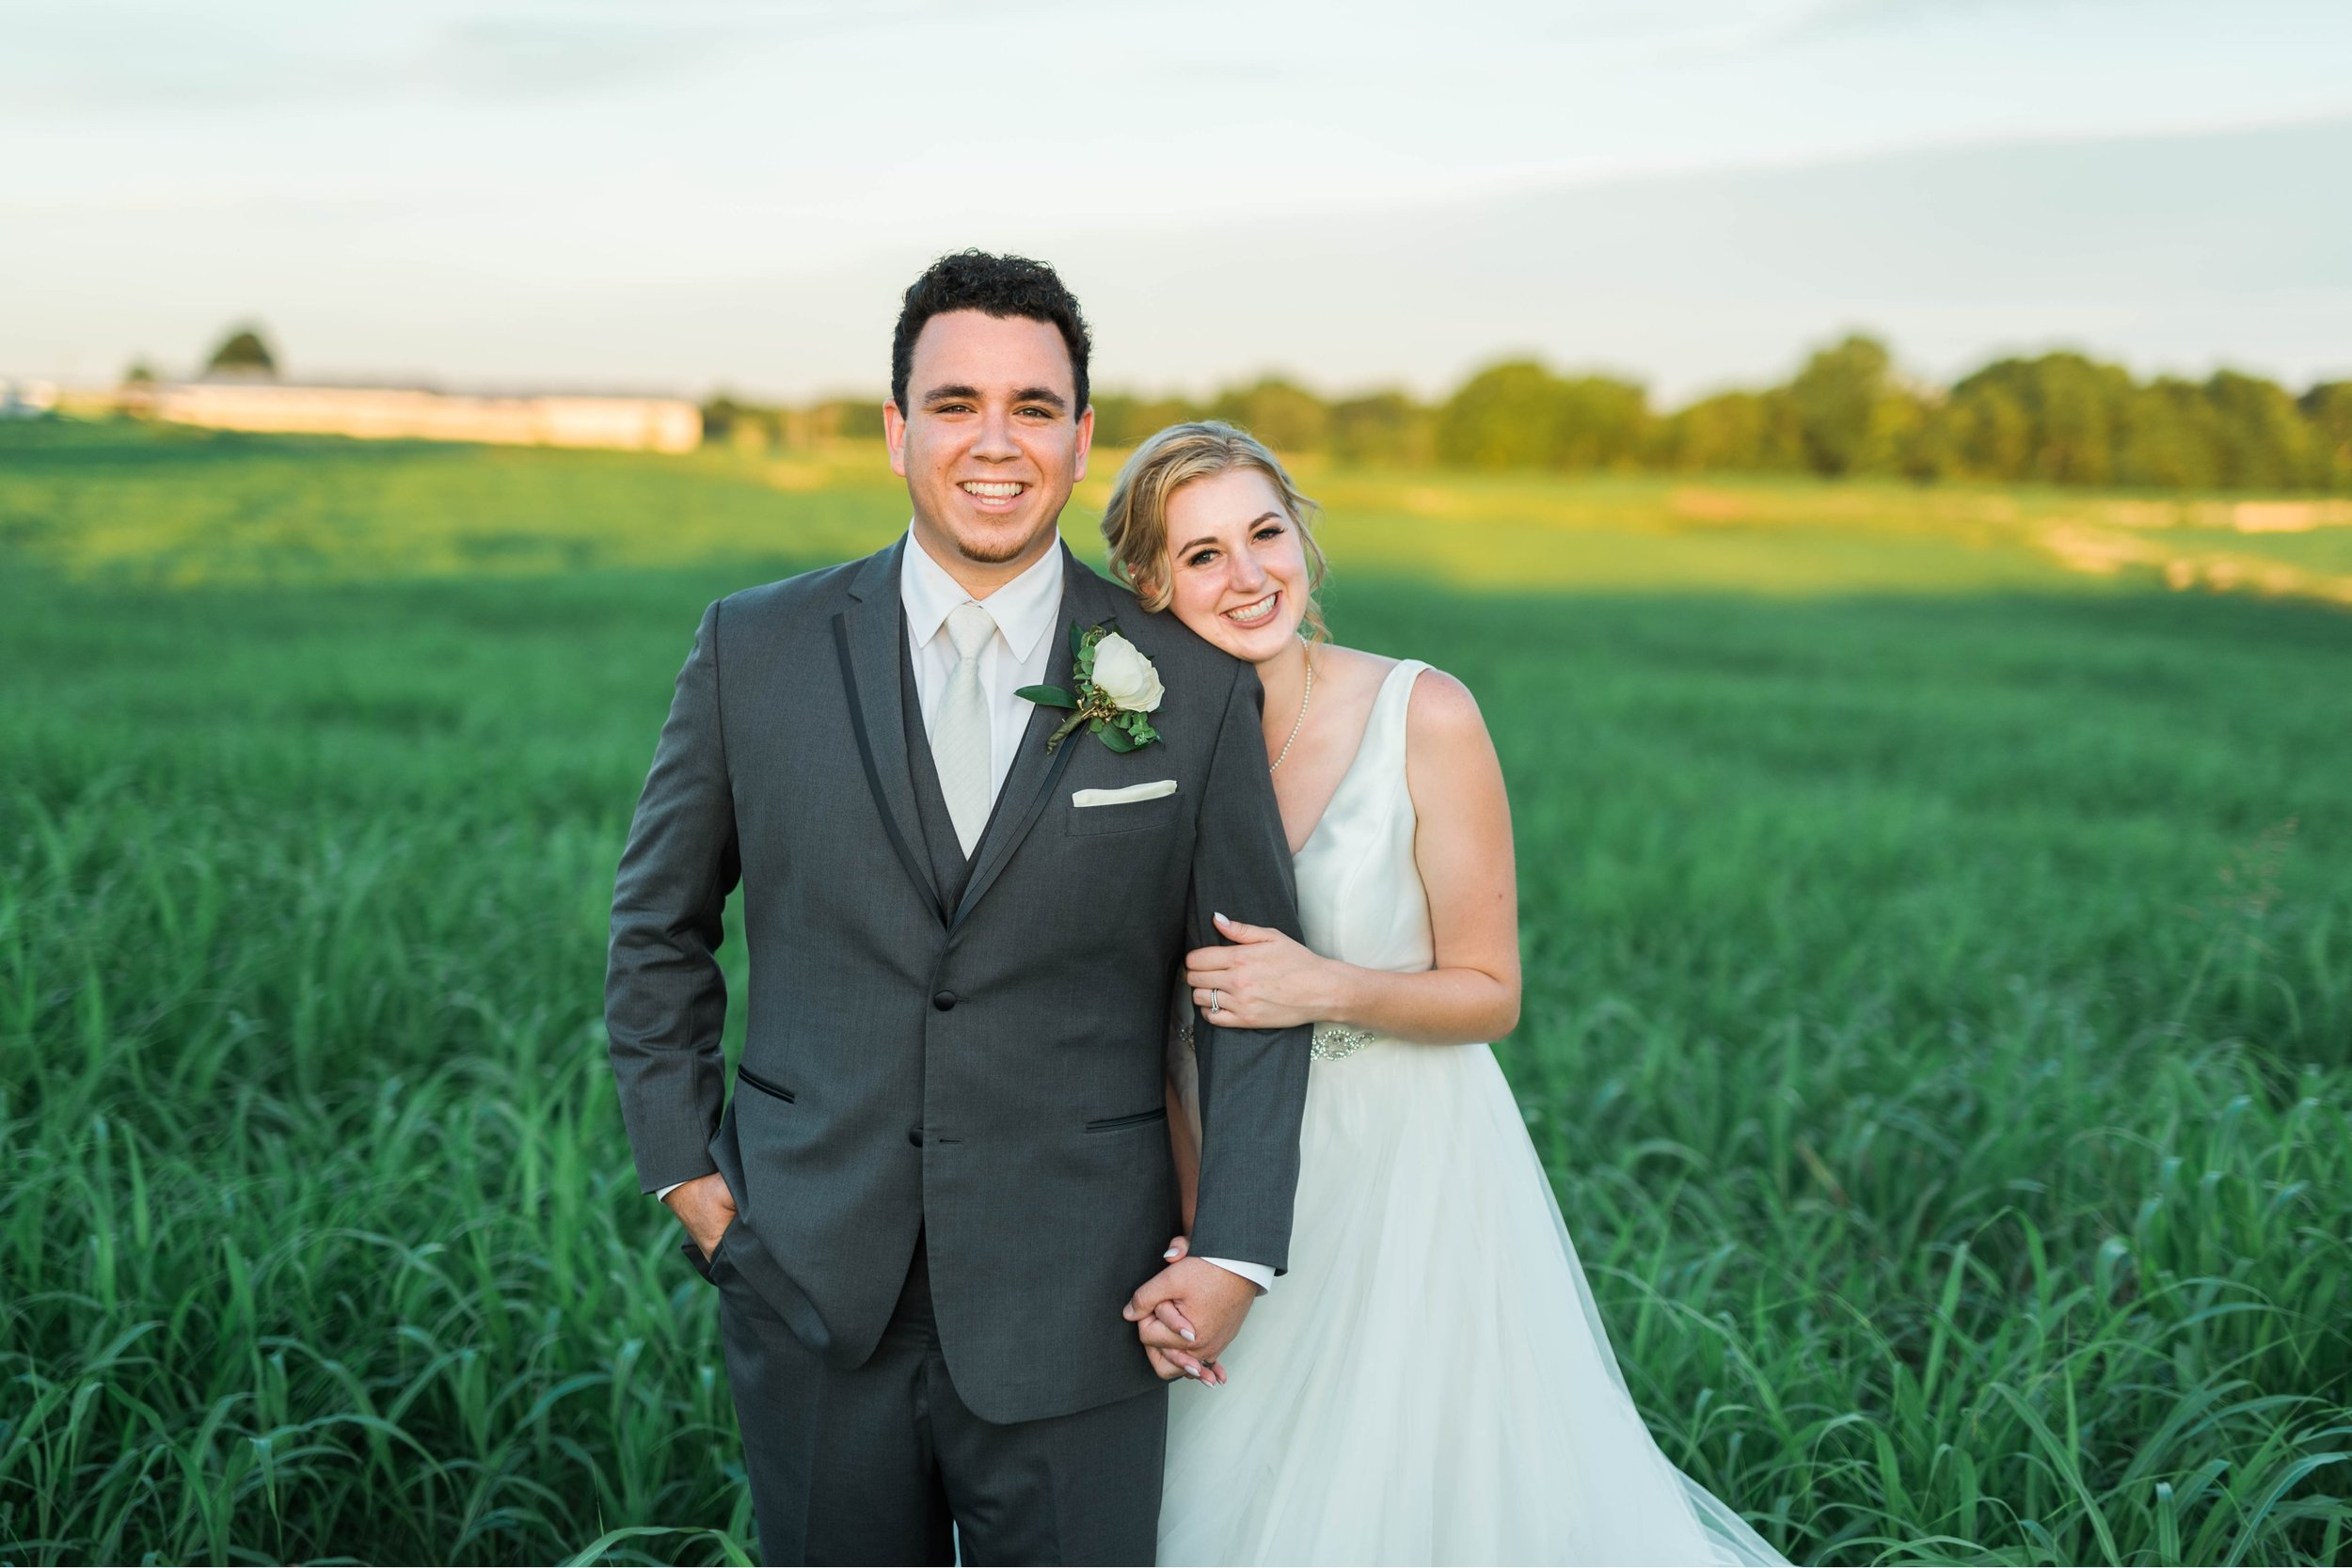 westmanorestate_entwinedevents_lynchburgweddingphotographer_Virginiaweddingphotographer_kateyam 10.jpg